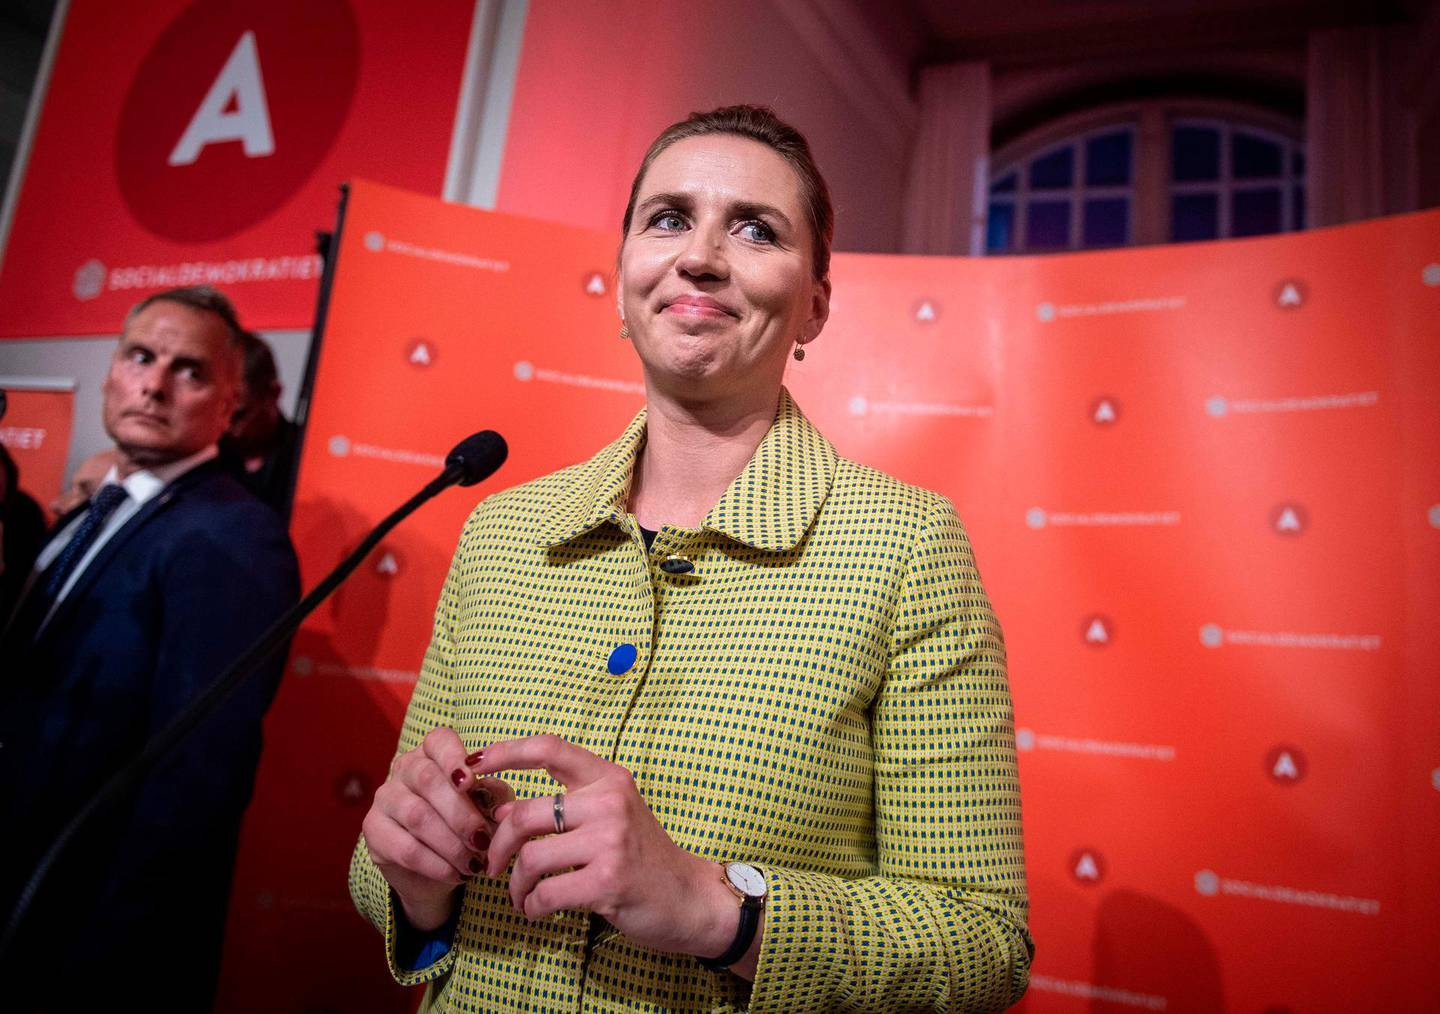 """Opposition leader Mette Frederiksen of The Danish Social Democrats after the election results at Christiansborg Castle in Copenhagen early June 6, 2019, during the country's parliamentary elections. The likely future prime minister of Denmark, Mette Frederiksen, embodies the new Danish Social Democratic model, with a new-found focus on restrictive immigration while championing the welfare state. Frederiksen """"has workers' blood in her veins, is a fourth generation Social Democrat... and spent years preparing to take over the leadership (in 2015) of the party she knows so well,"""" daily Politiken wrote just days before Wednesday's general election in which she ultimately emerged victorious.  - Denmark OUT  / AFP / Ritzau Scanpix / Liselotte Sabroe"""